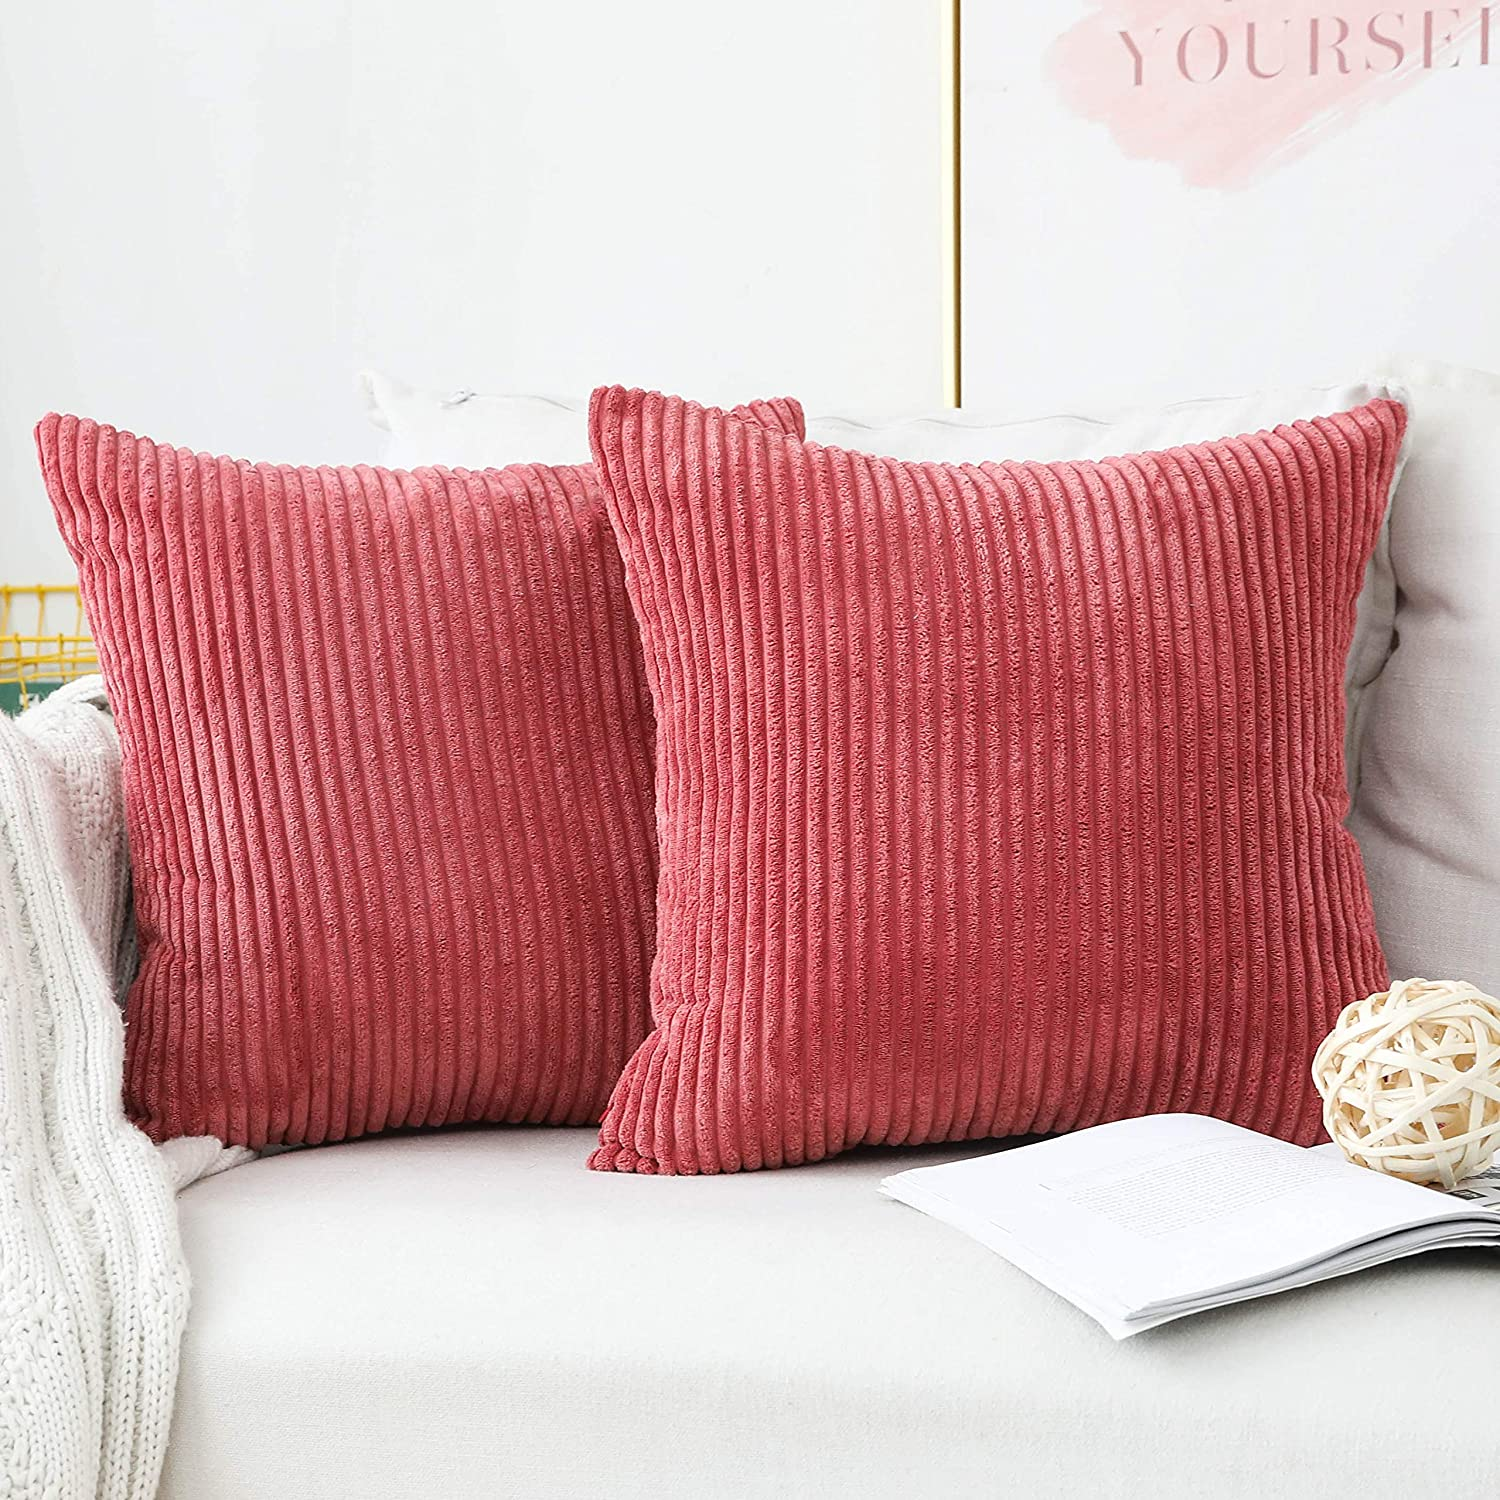 Home Brilliant 24x24 Pillow Covers Summer Decorations Striped Velvet Corduroy Euro Sham Large Square Pillow Case for Sofa, 60cm, Set of 2, Dry Rose Pink